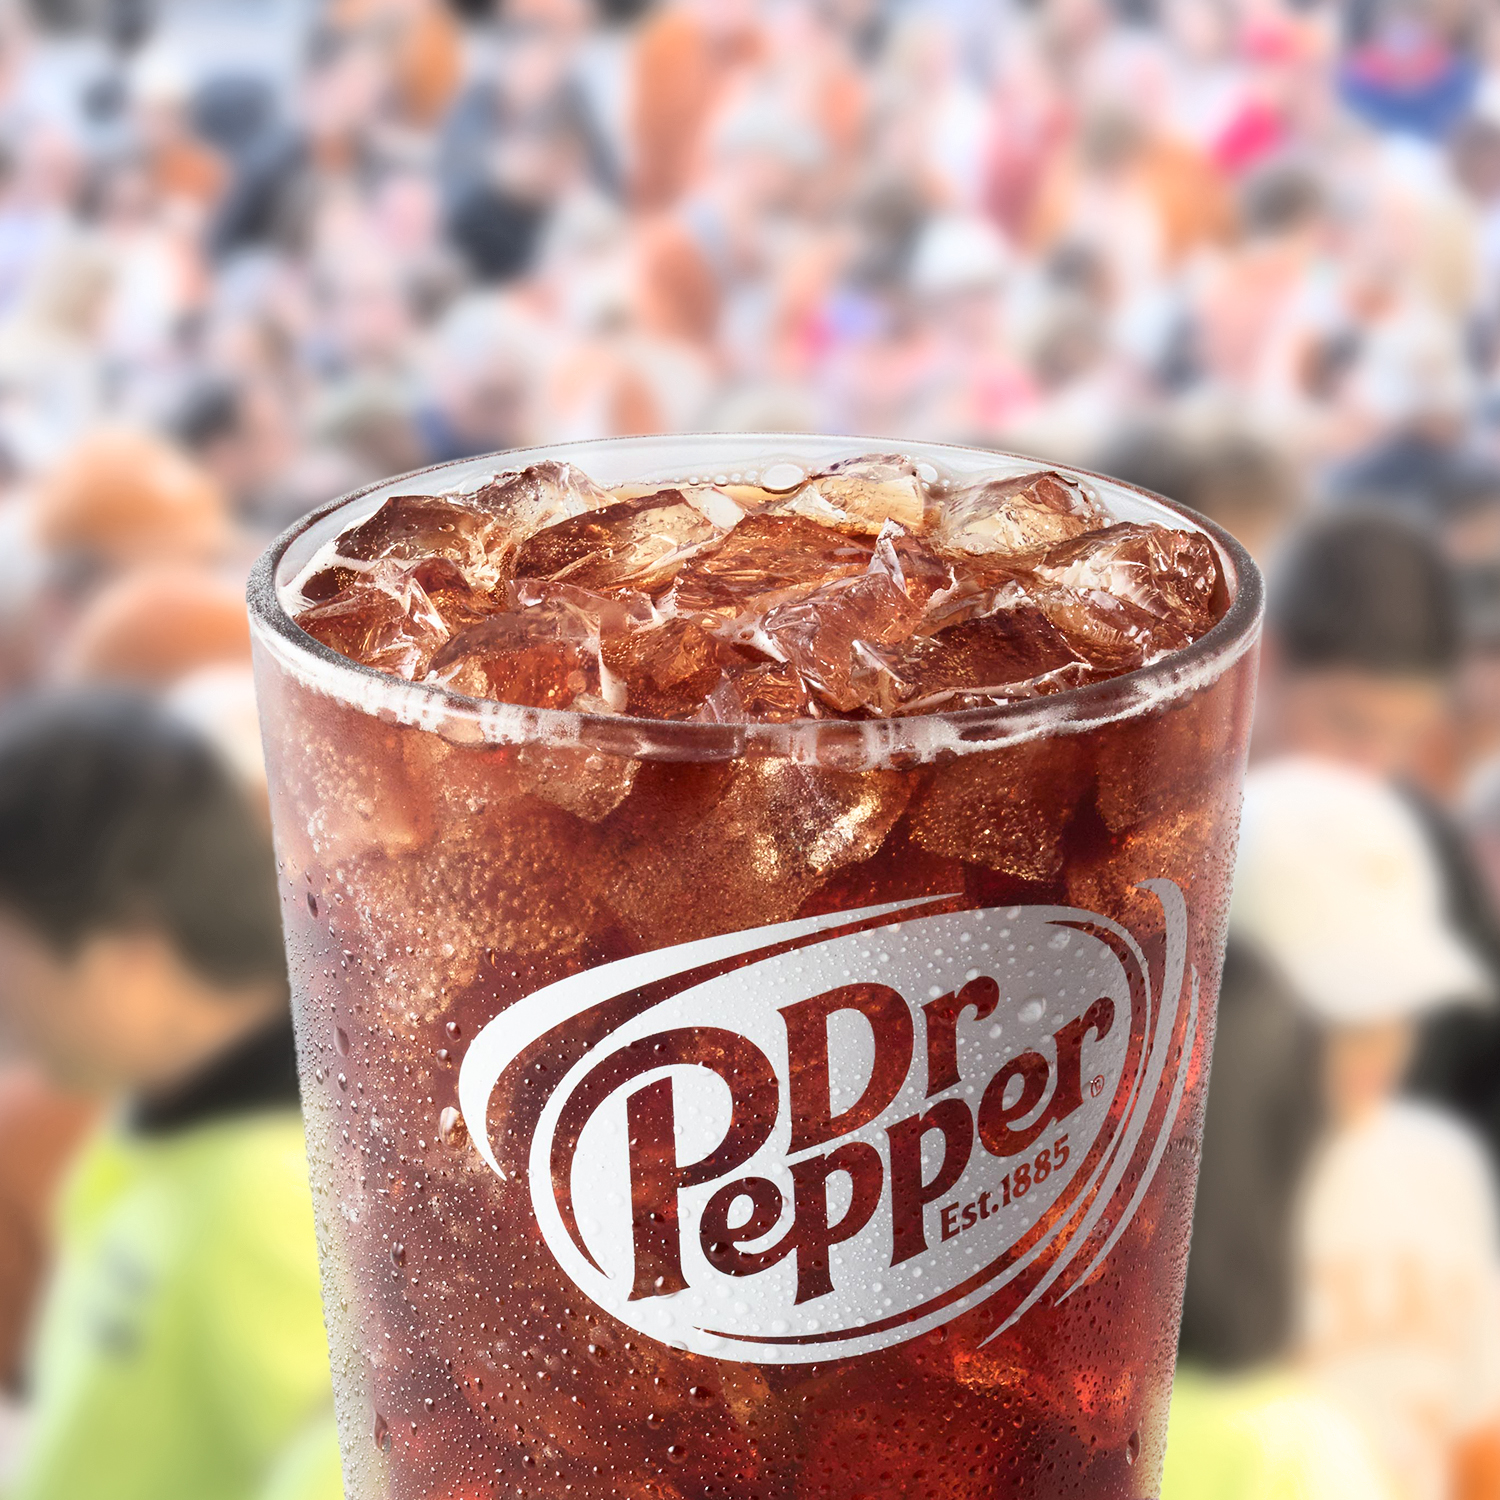 dr pepper in a crowd.jpg